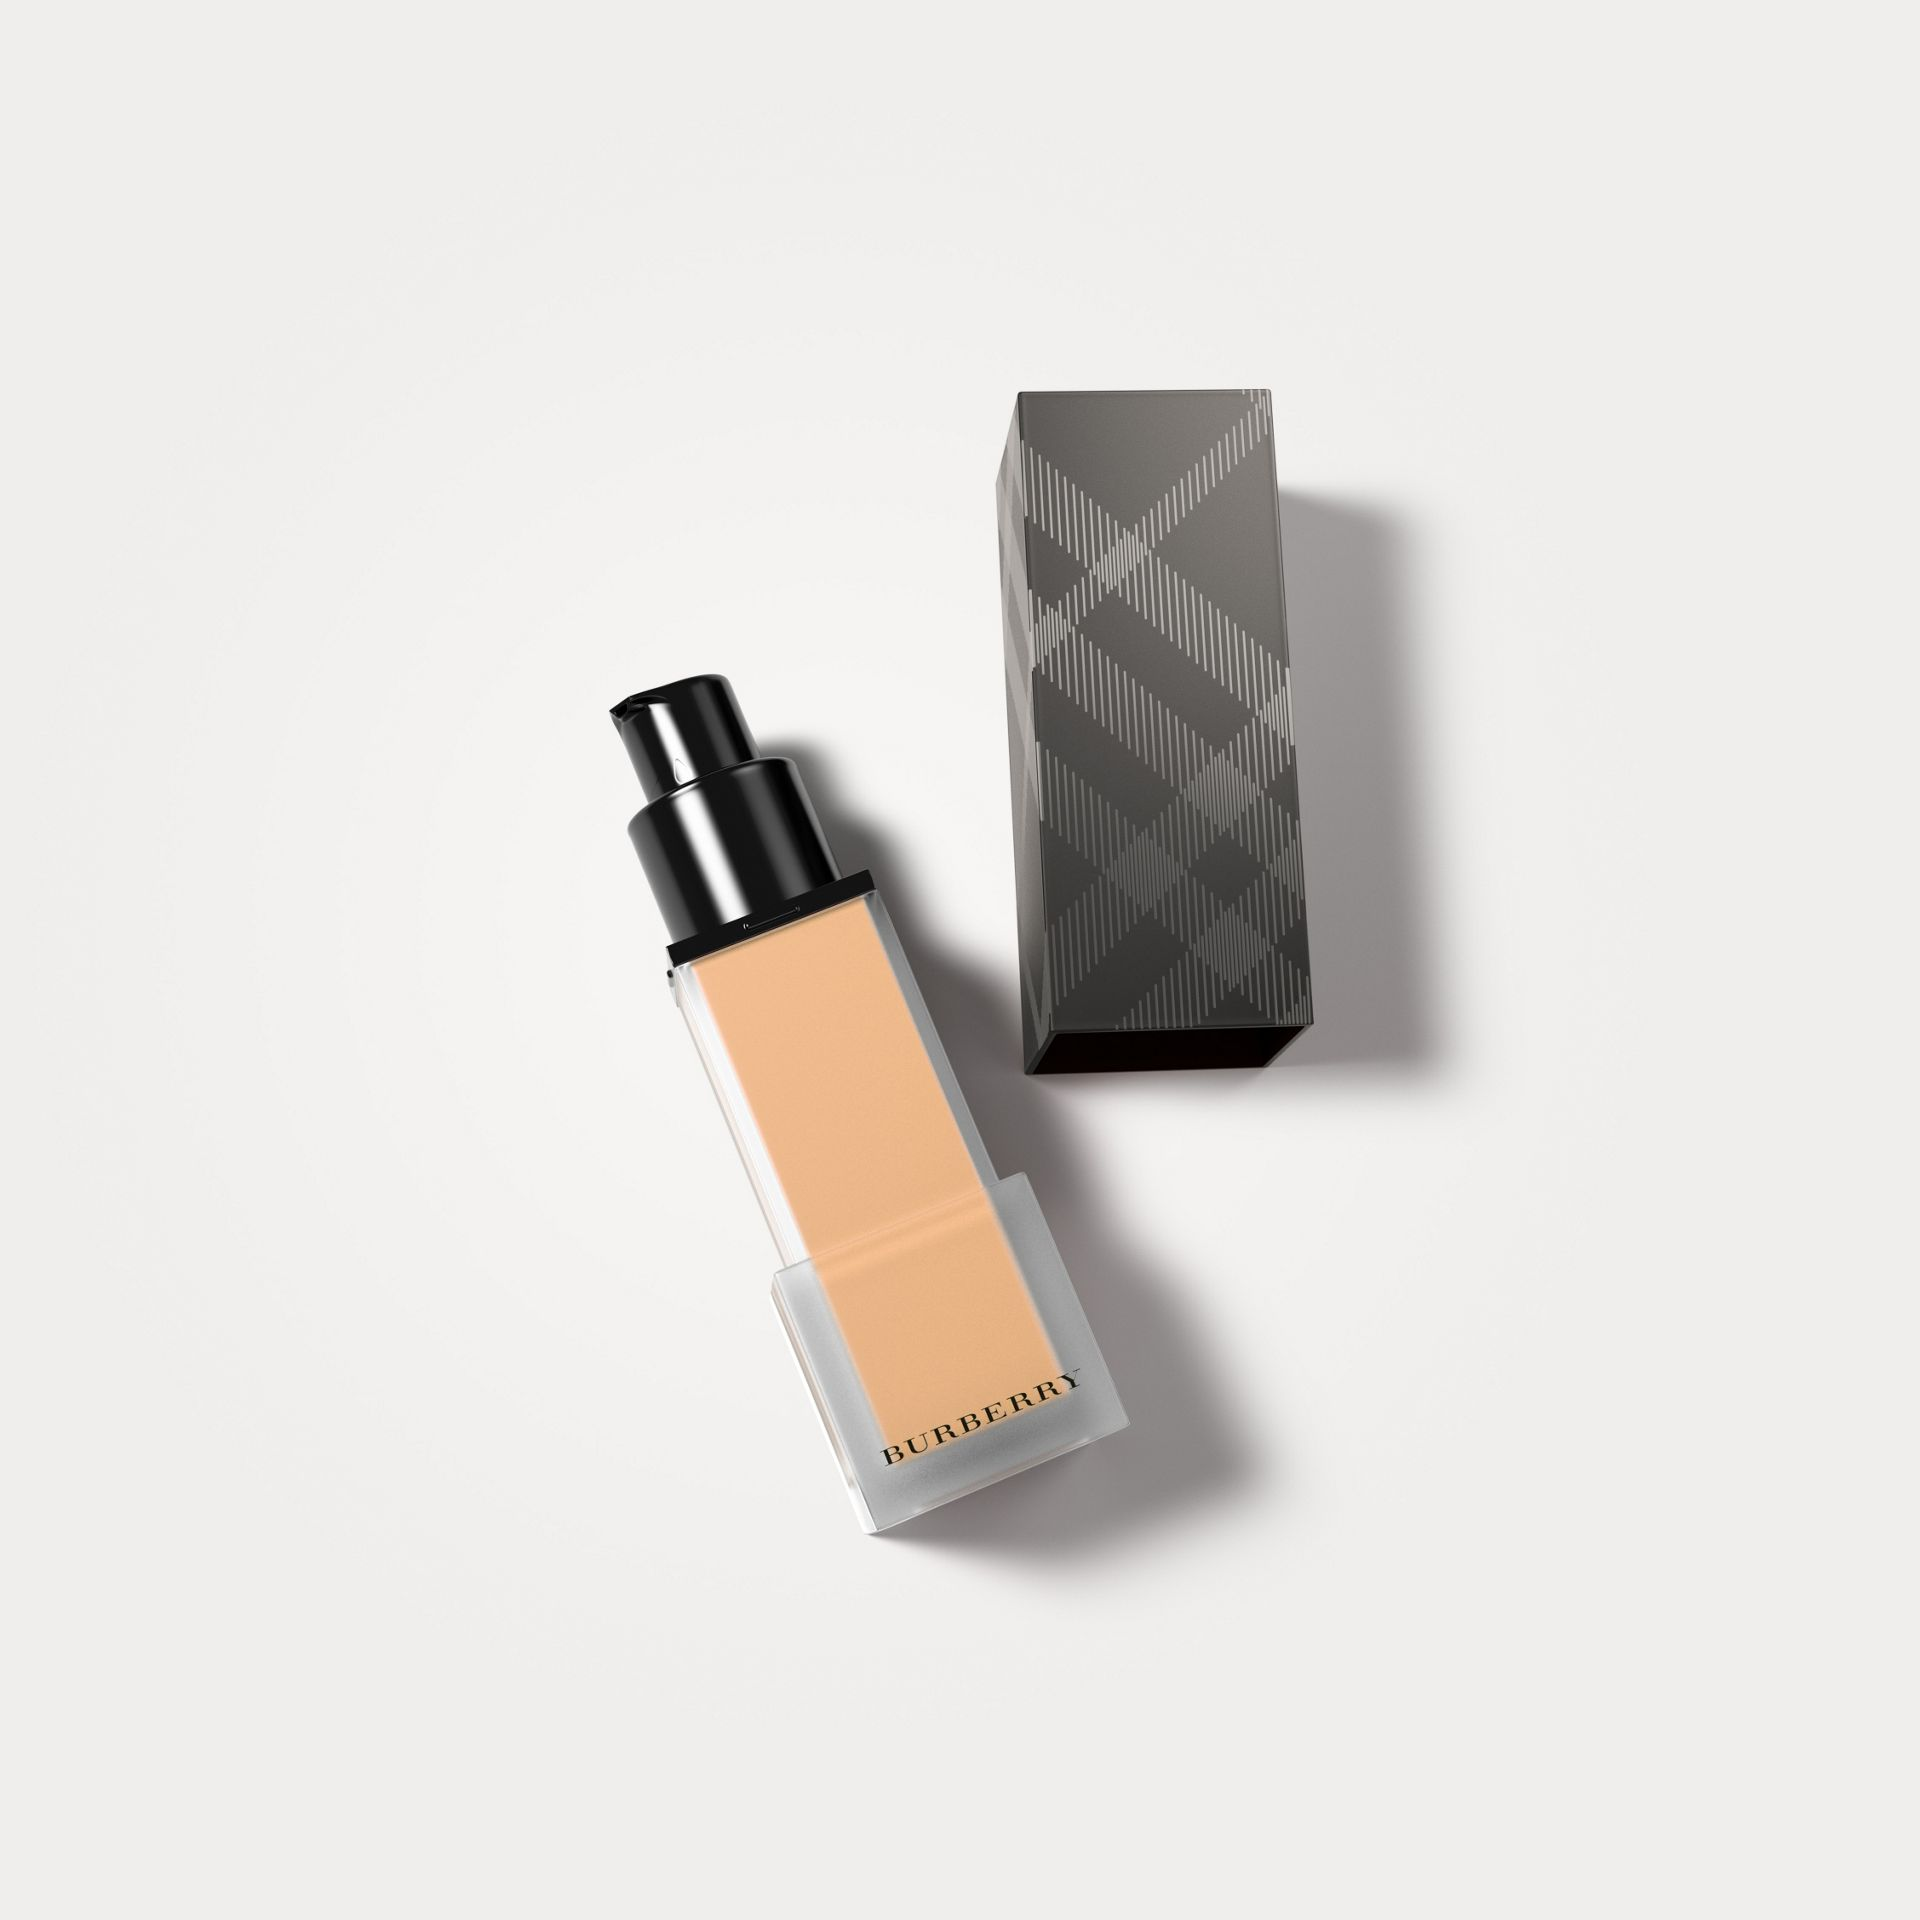 Warm honey 38 Burberry Cashmere Sunscreen SPF 20 – Warm Honey No.38 - gallery image 1